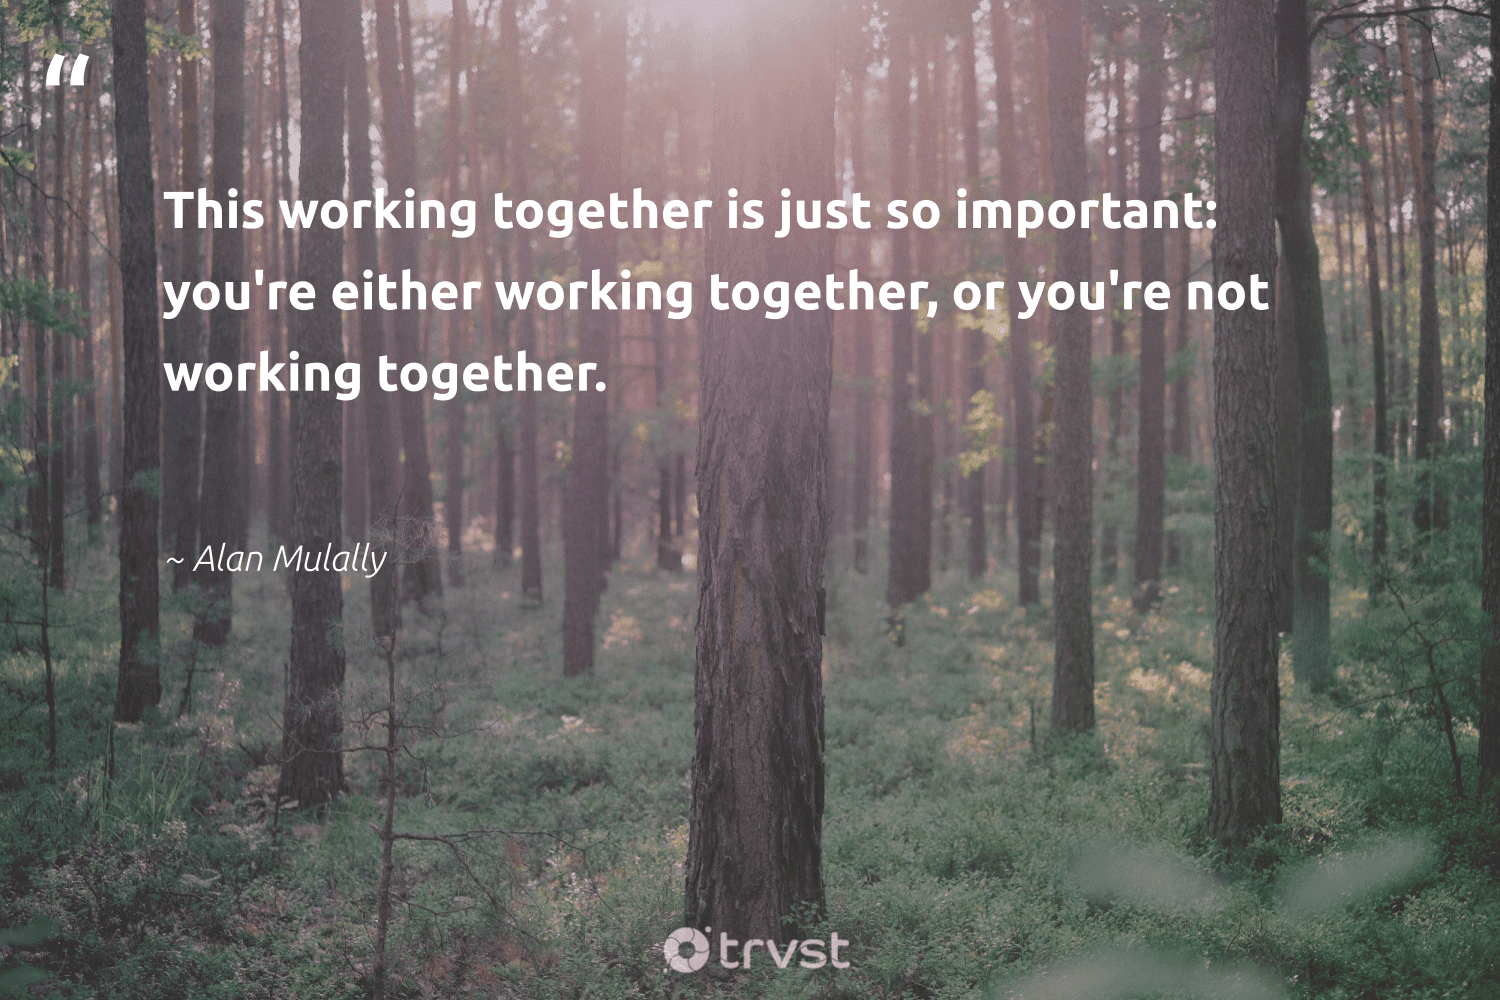 """""""This working together is just so important: you're either working together, or you're not working together.""""  - Alan Mulally #trvst #quotes #workingtogether #futureofwork #collectiveaction #softskills #bethechange #nevergiveup #socialimpact #begreat #changetheworld #takeaction"""